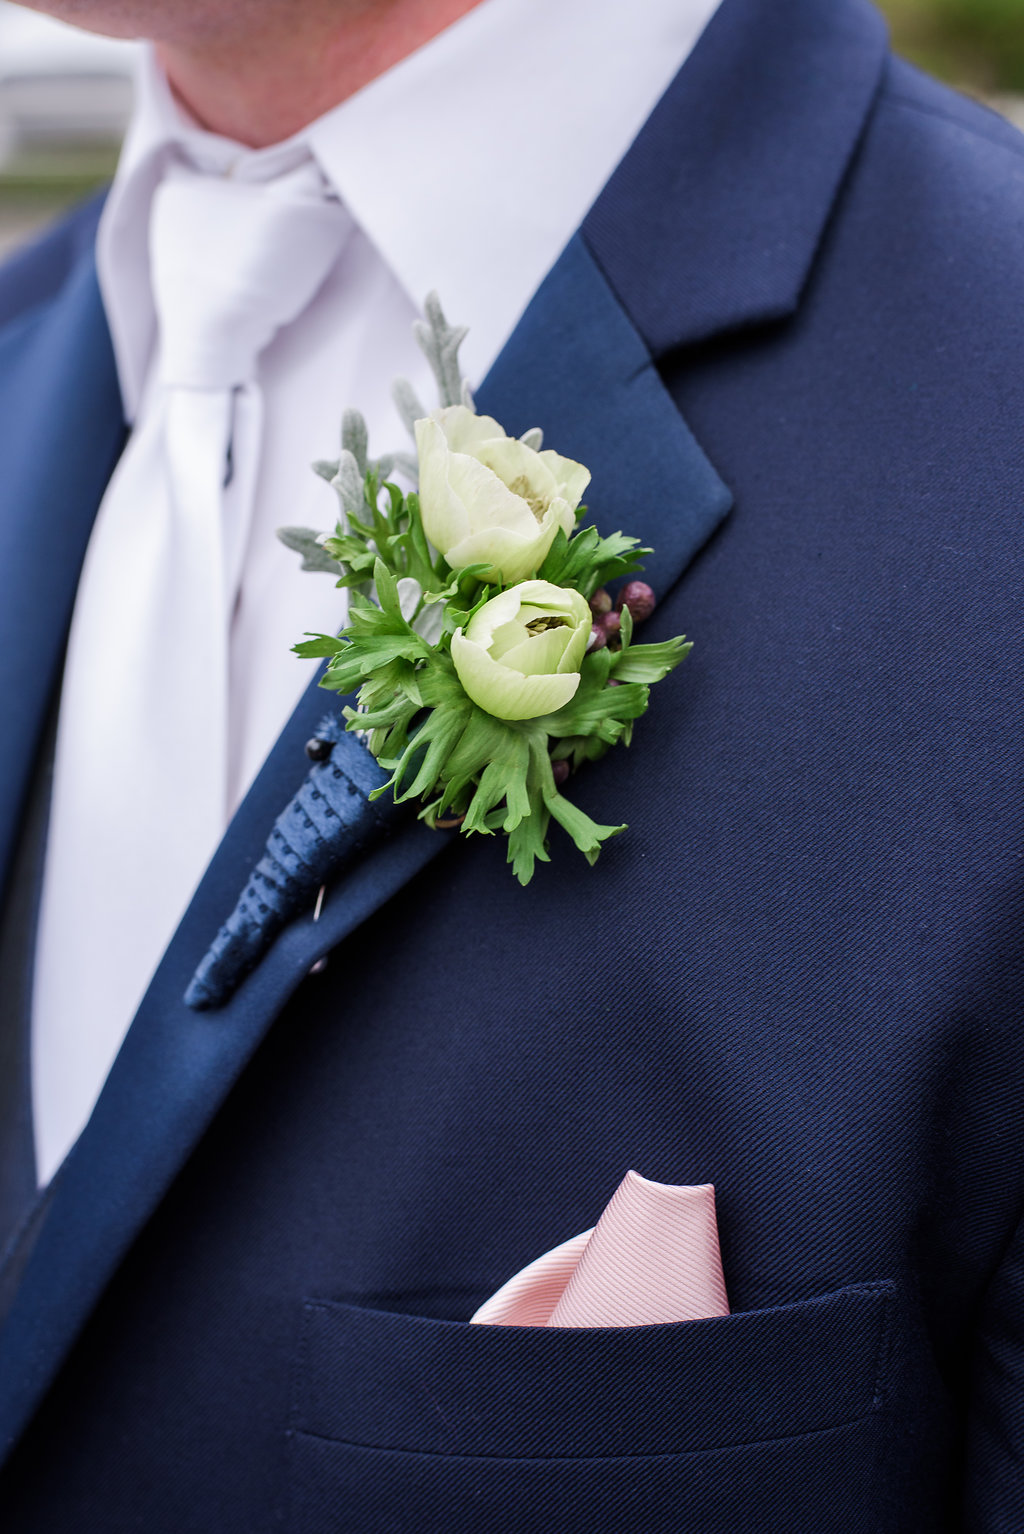 Greenery and neutral florals accented the groom's navy suit.